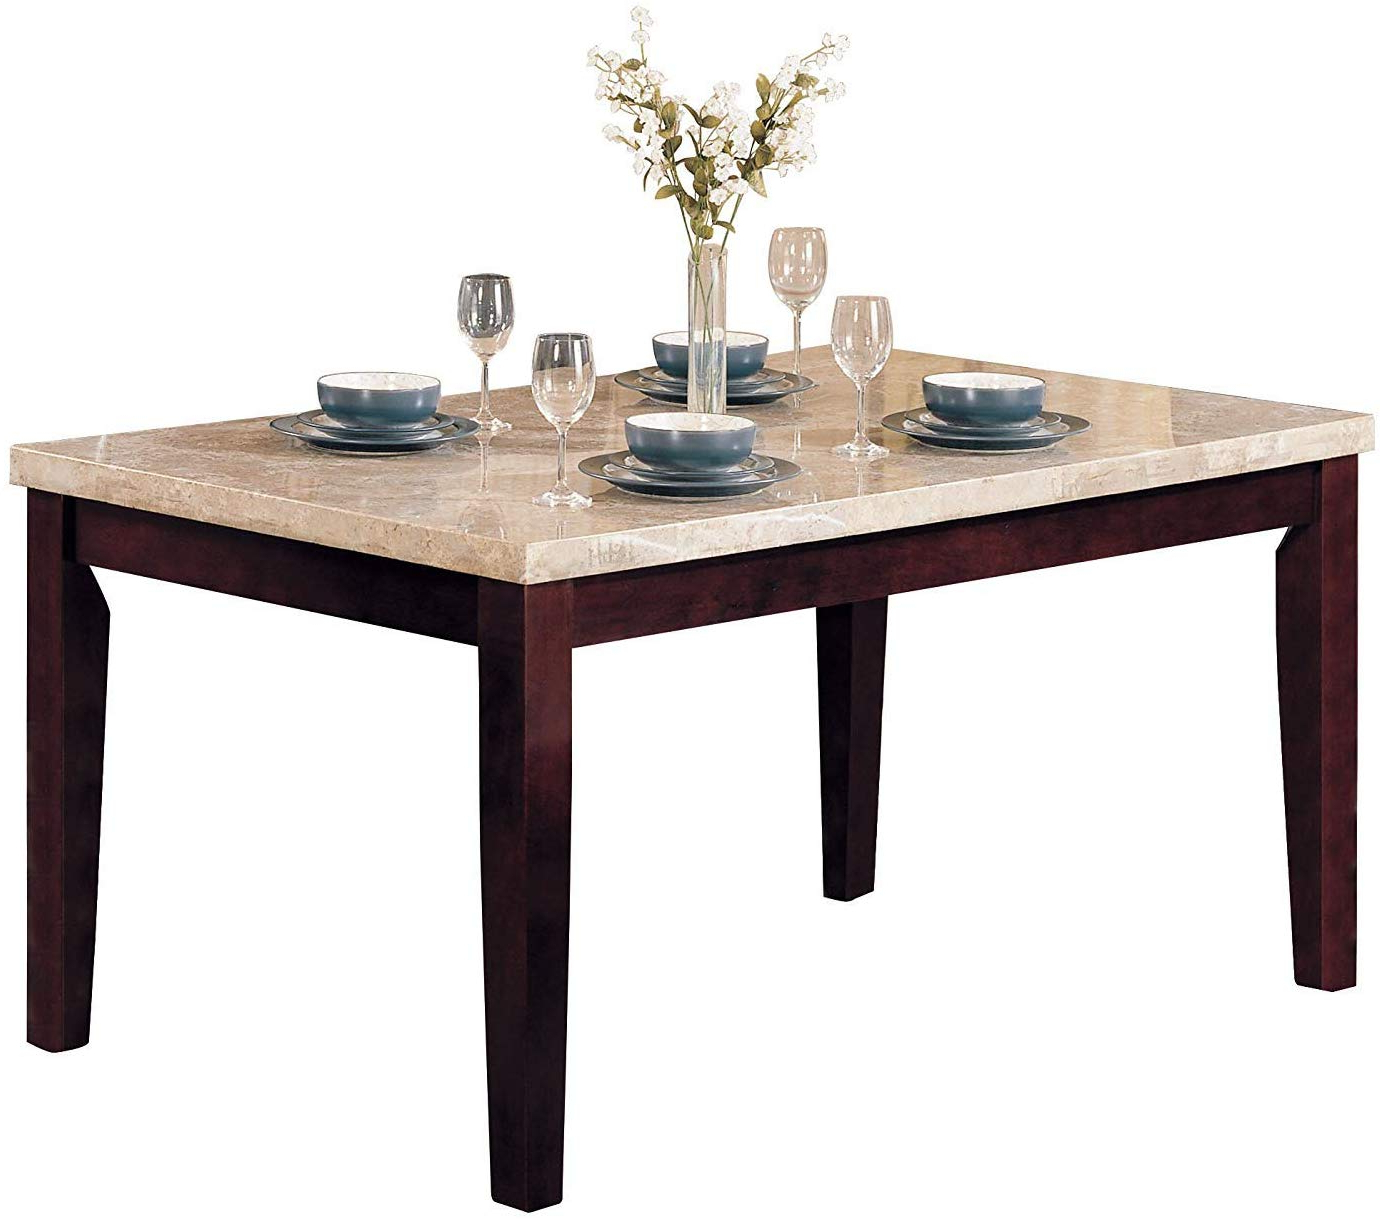 Widely Used Acme Britney Walnut Dining Table With White Marble Top Throughout Transitional Antique Walnut Square Casual Dining Tables (View 23 of 25)